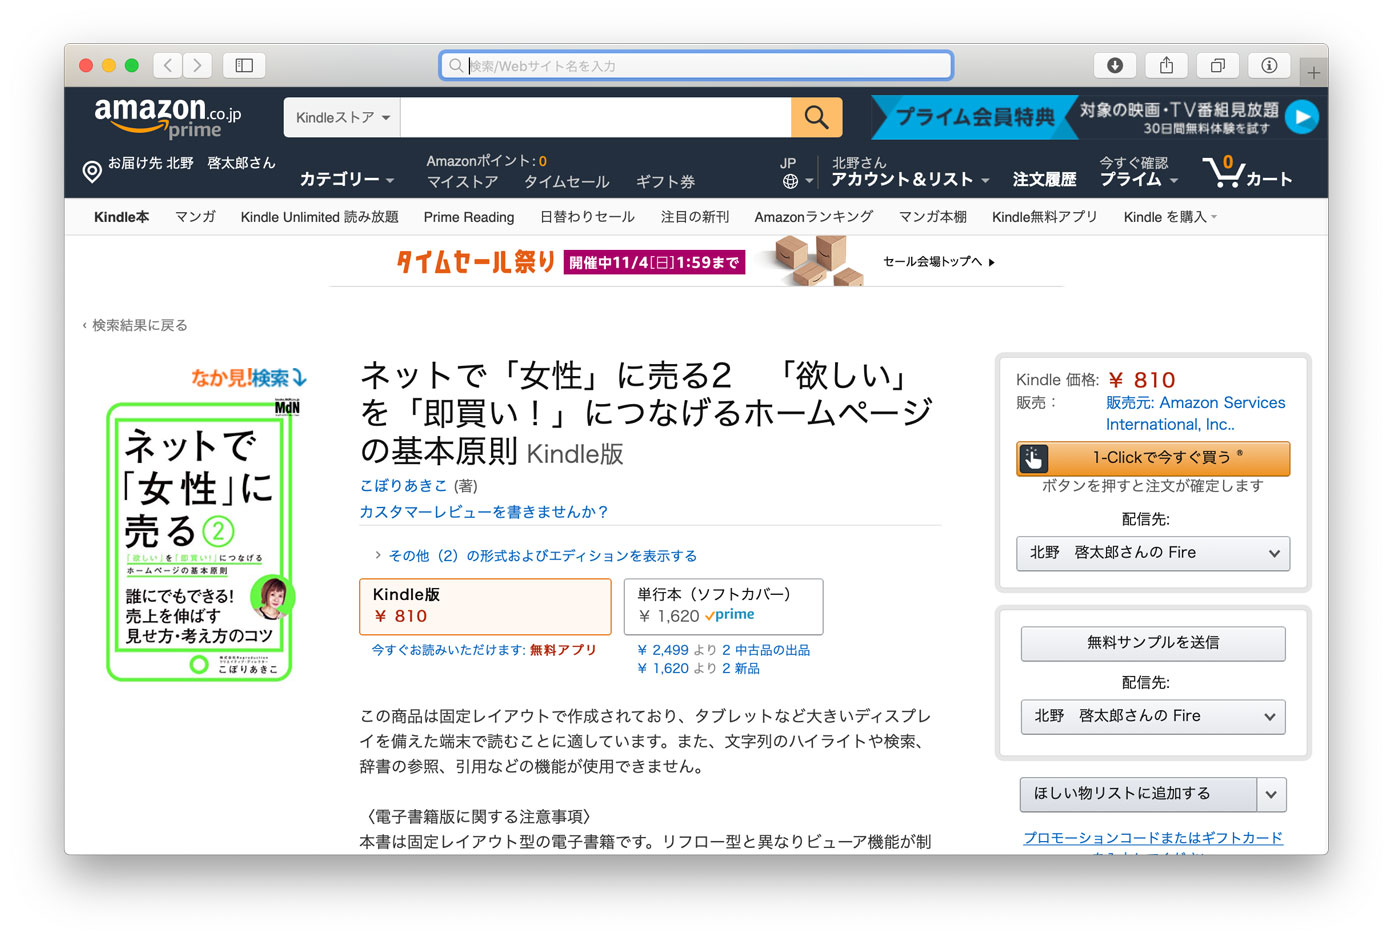 Amazon Kindle本 商品ページ